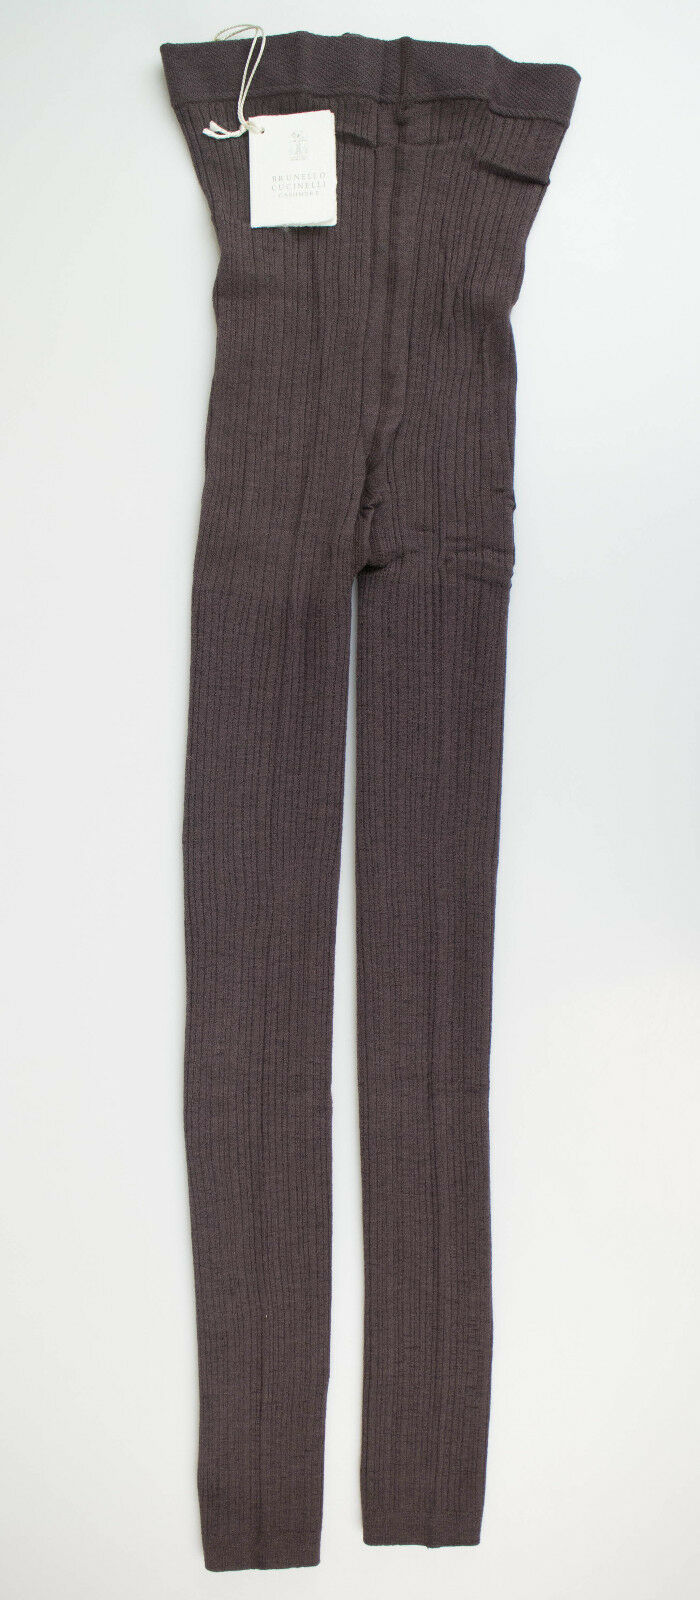 New BRUNELLO CUCINELLI Brown Ribbed Cashmere Blend Footless Tights Size M  675